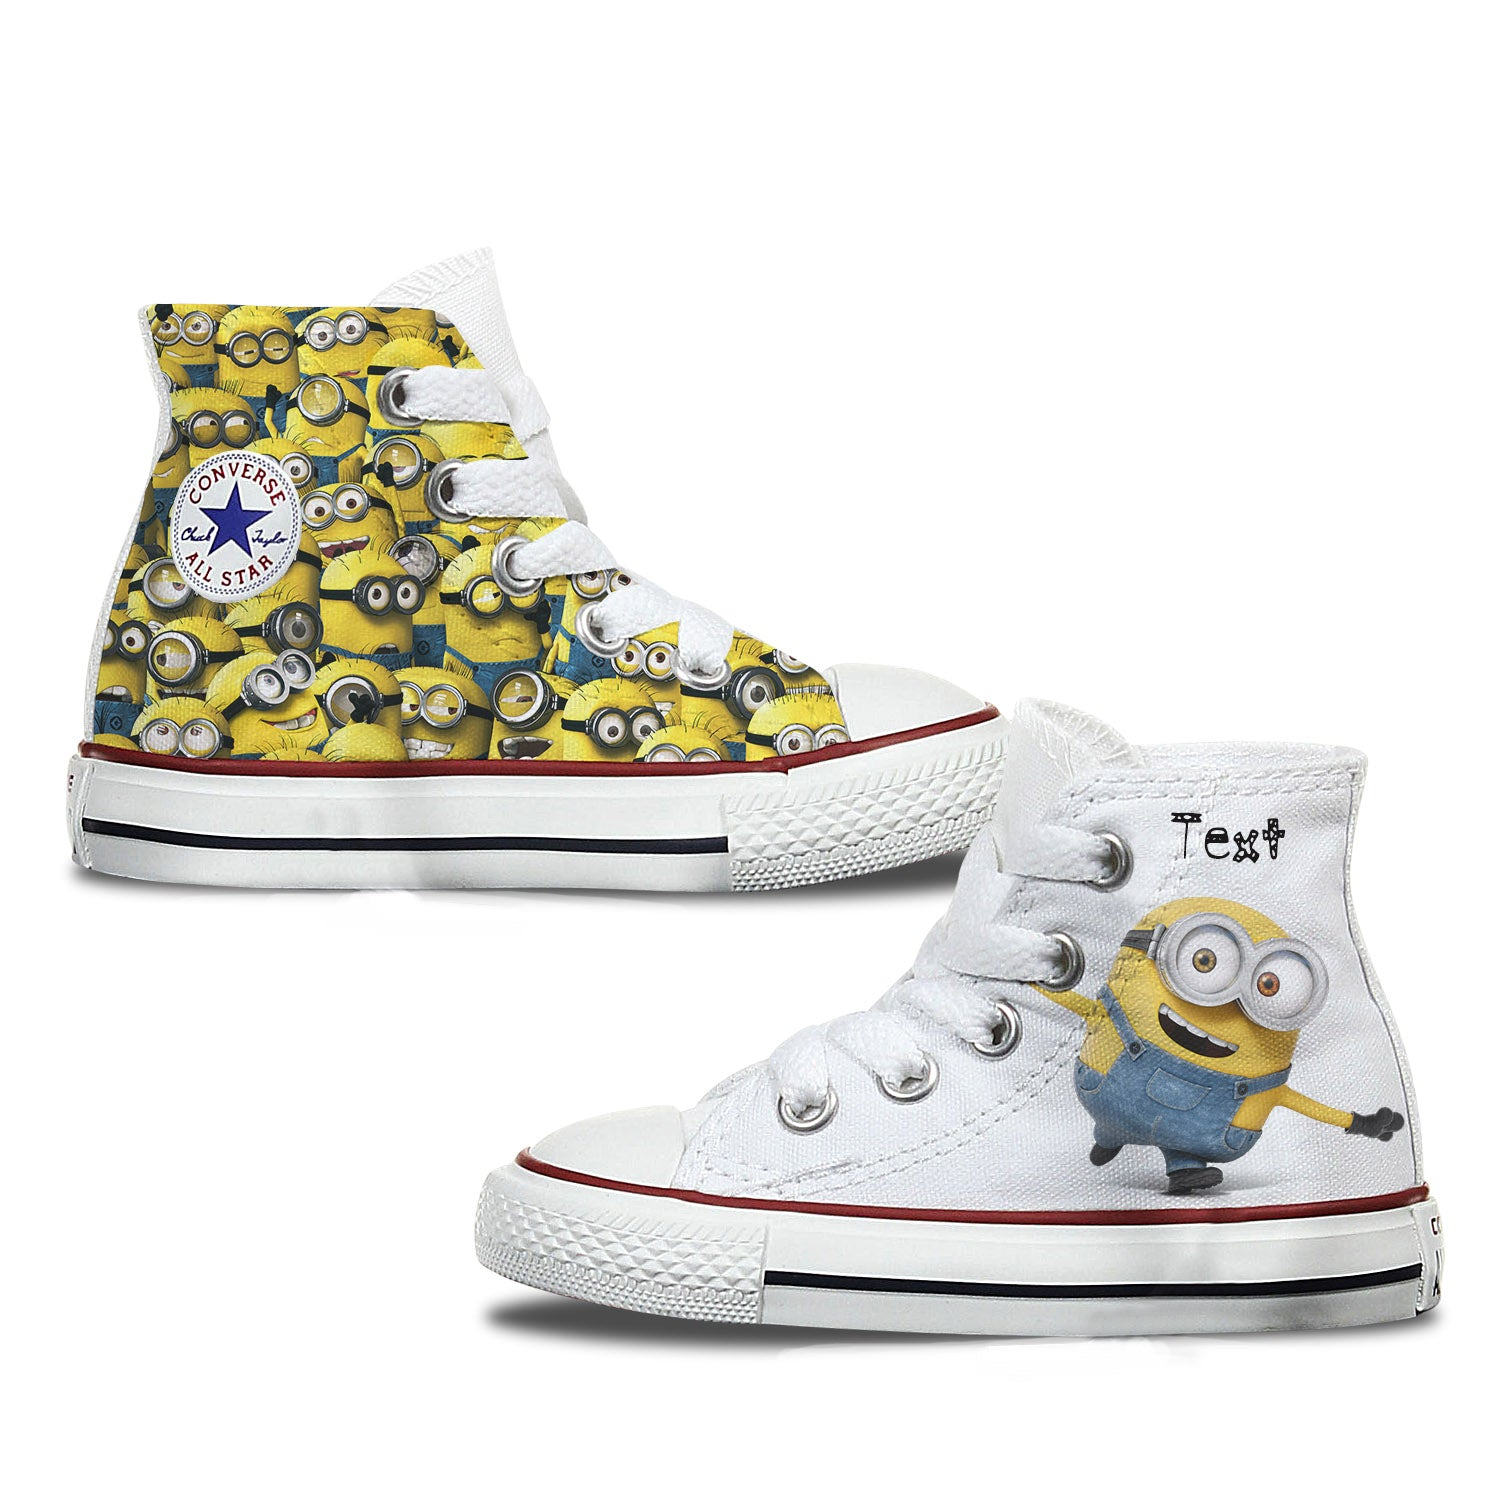 Toddler Minions Custom Converse